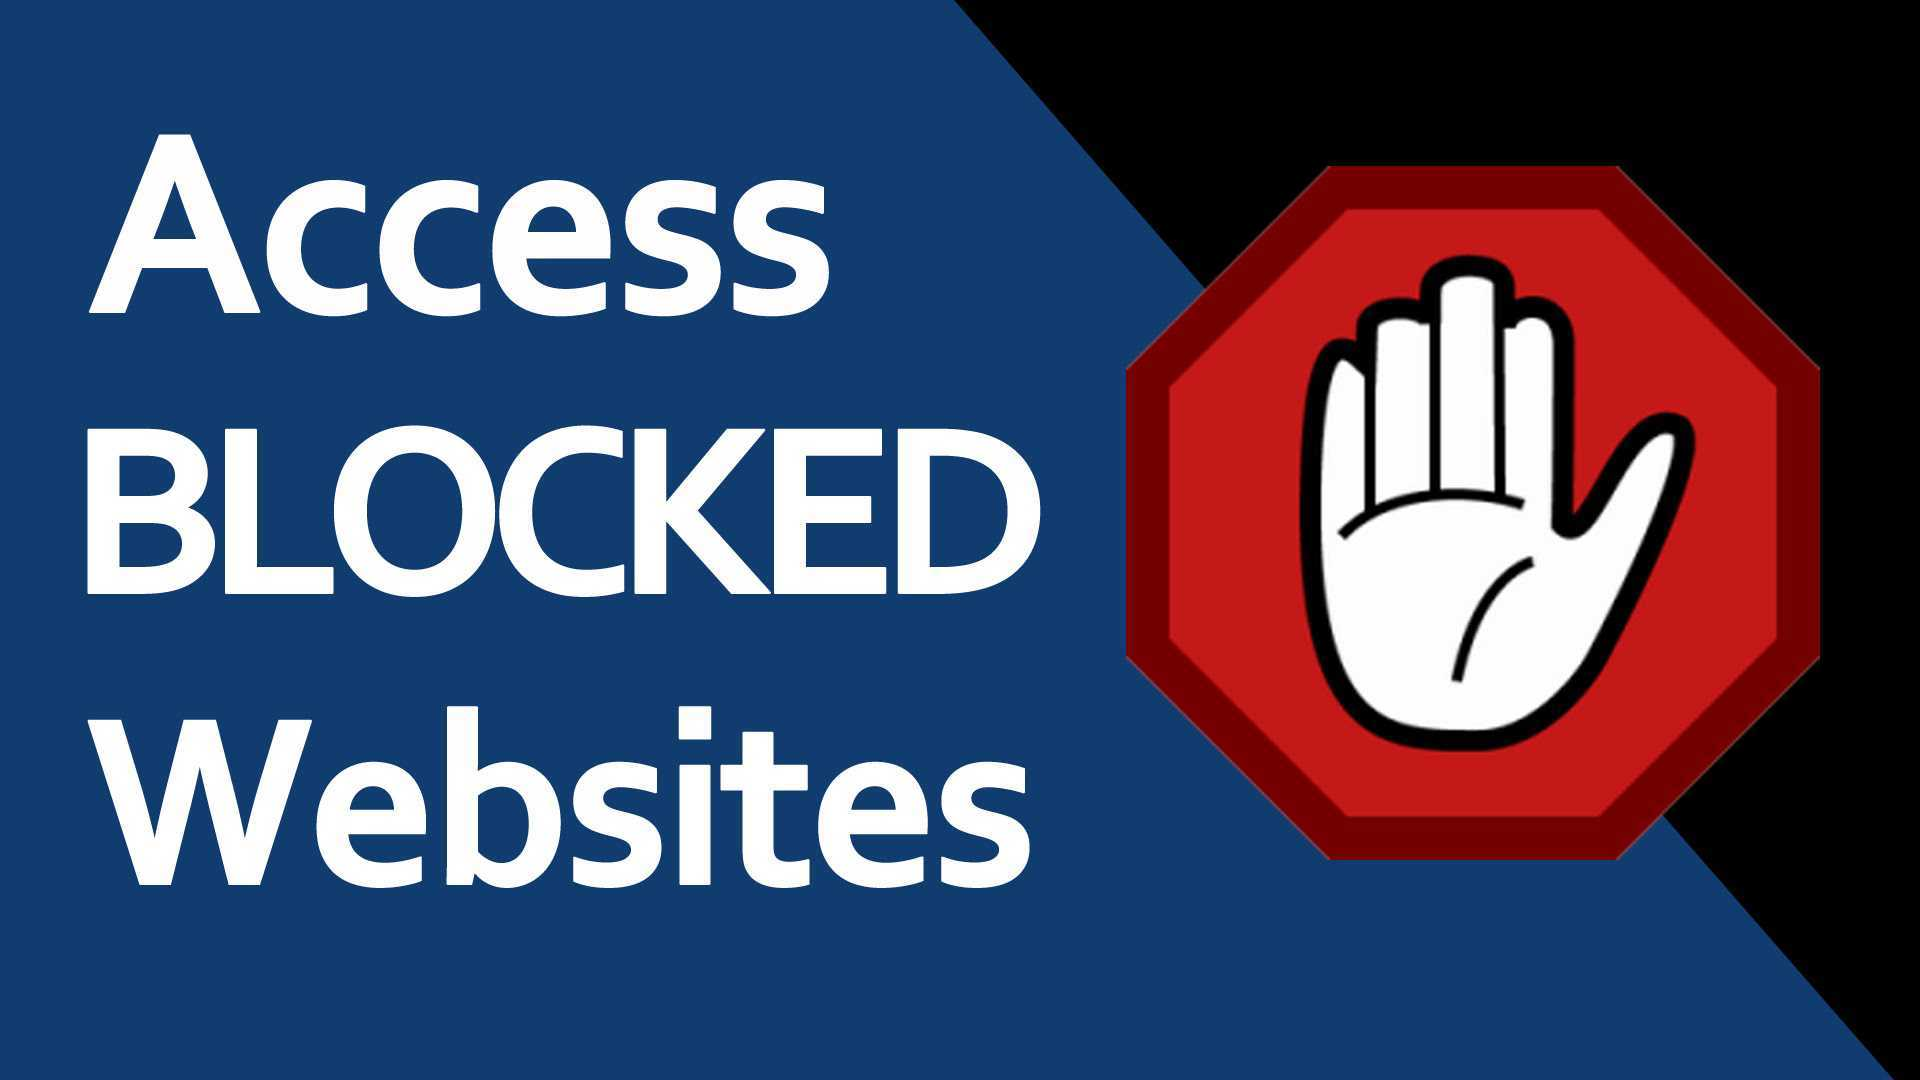 Access to this website has been blocked